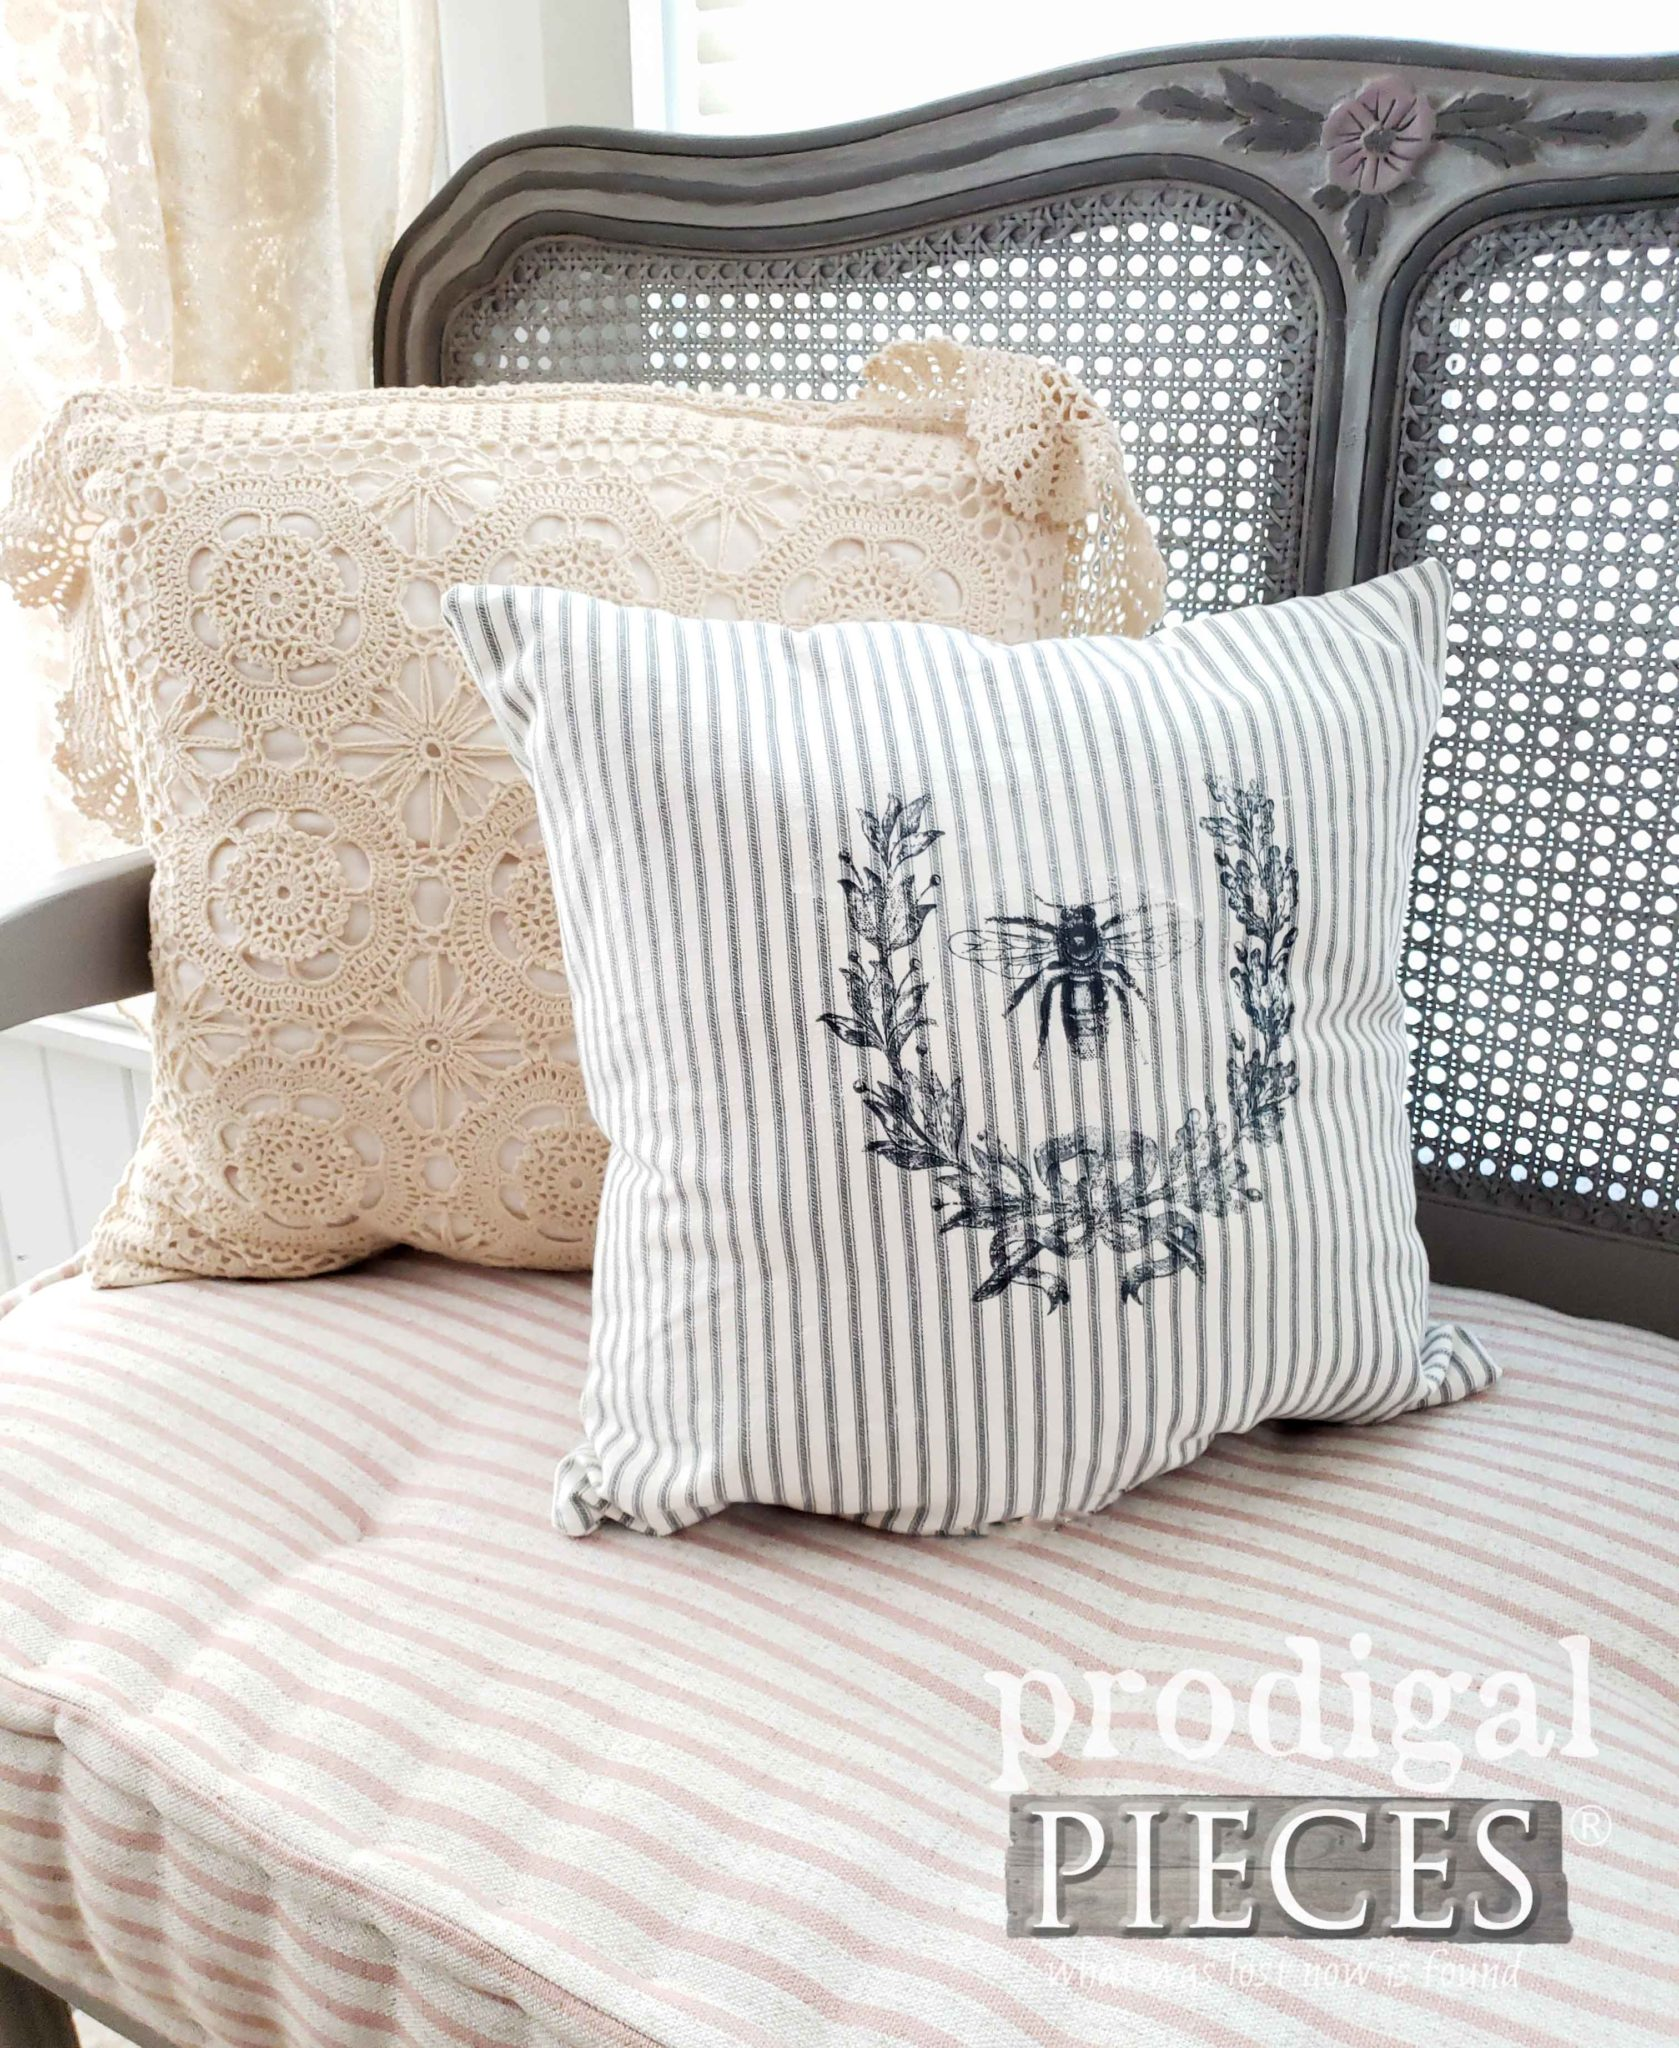 DIY French Ticking Pillow with Laurel Wreath and Bee Graphic by Larissa of Prodigal Pieces | prodigalpieces.com